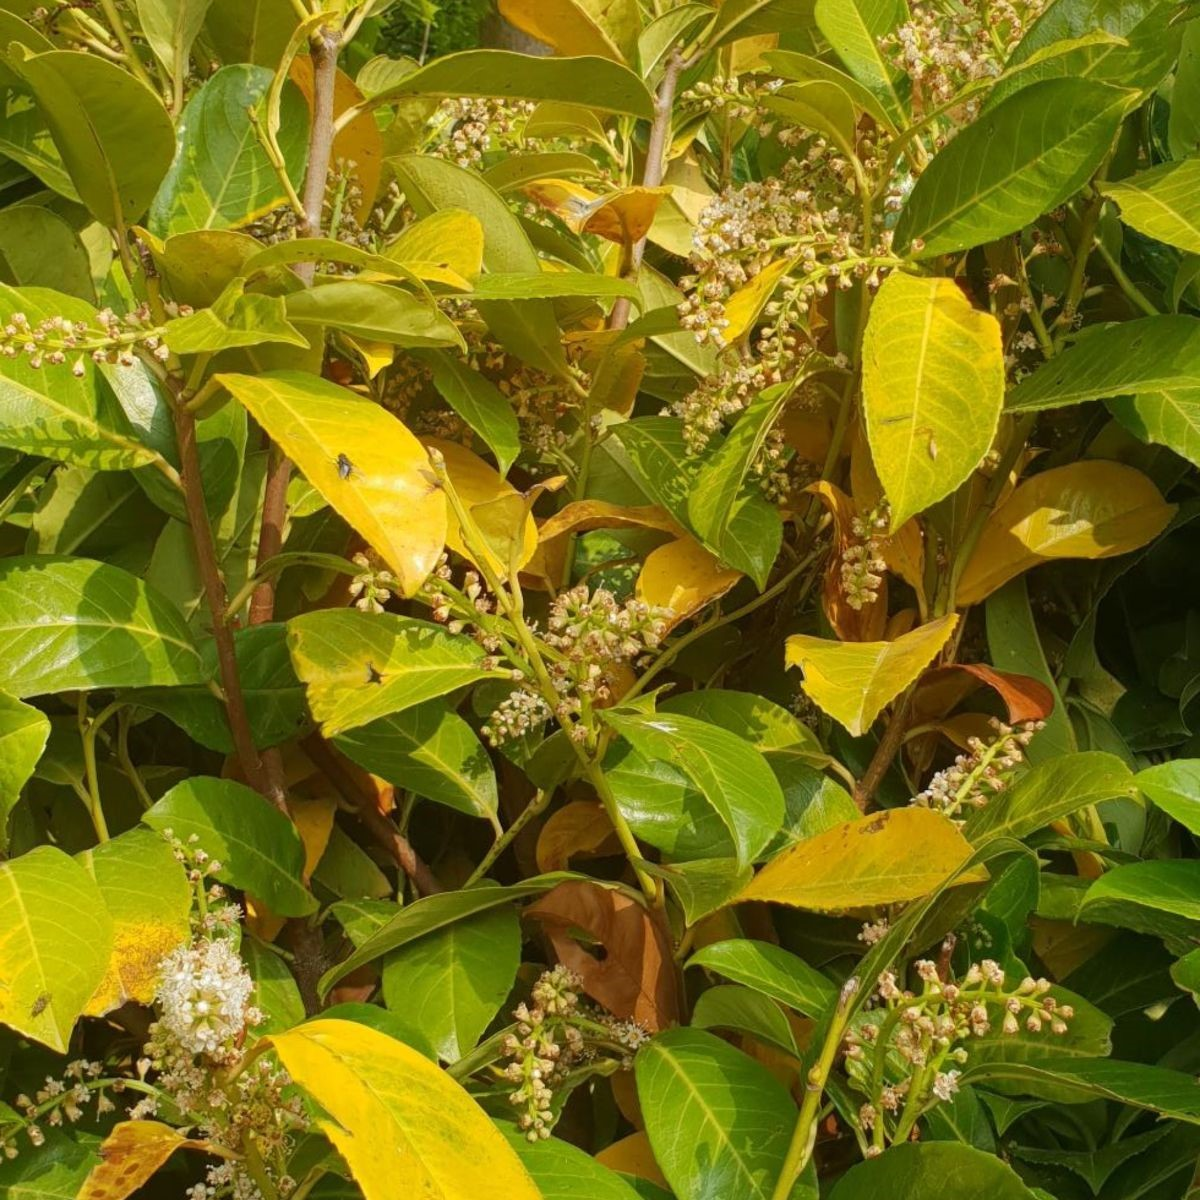 Laurel going yellow due to lack of water